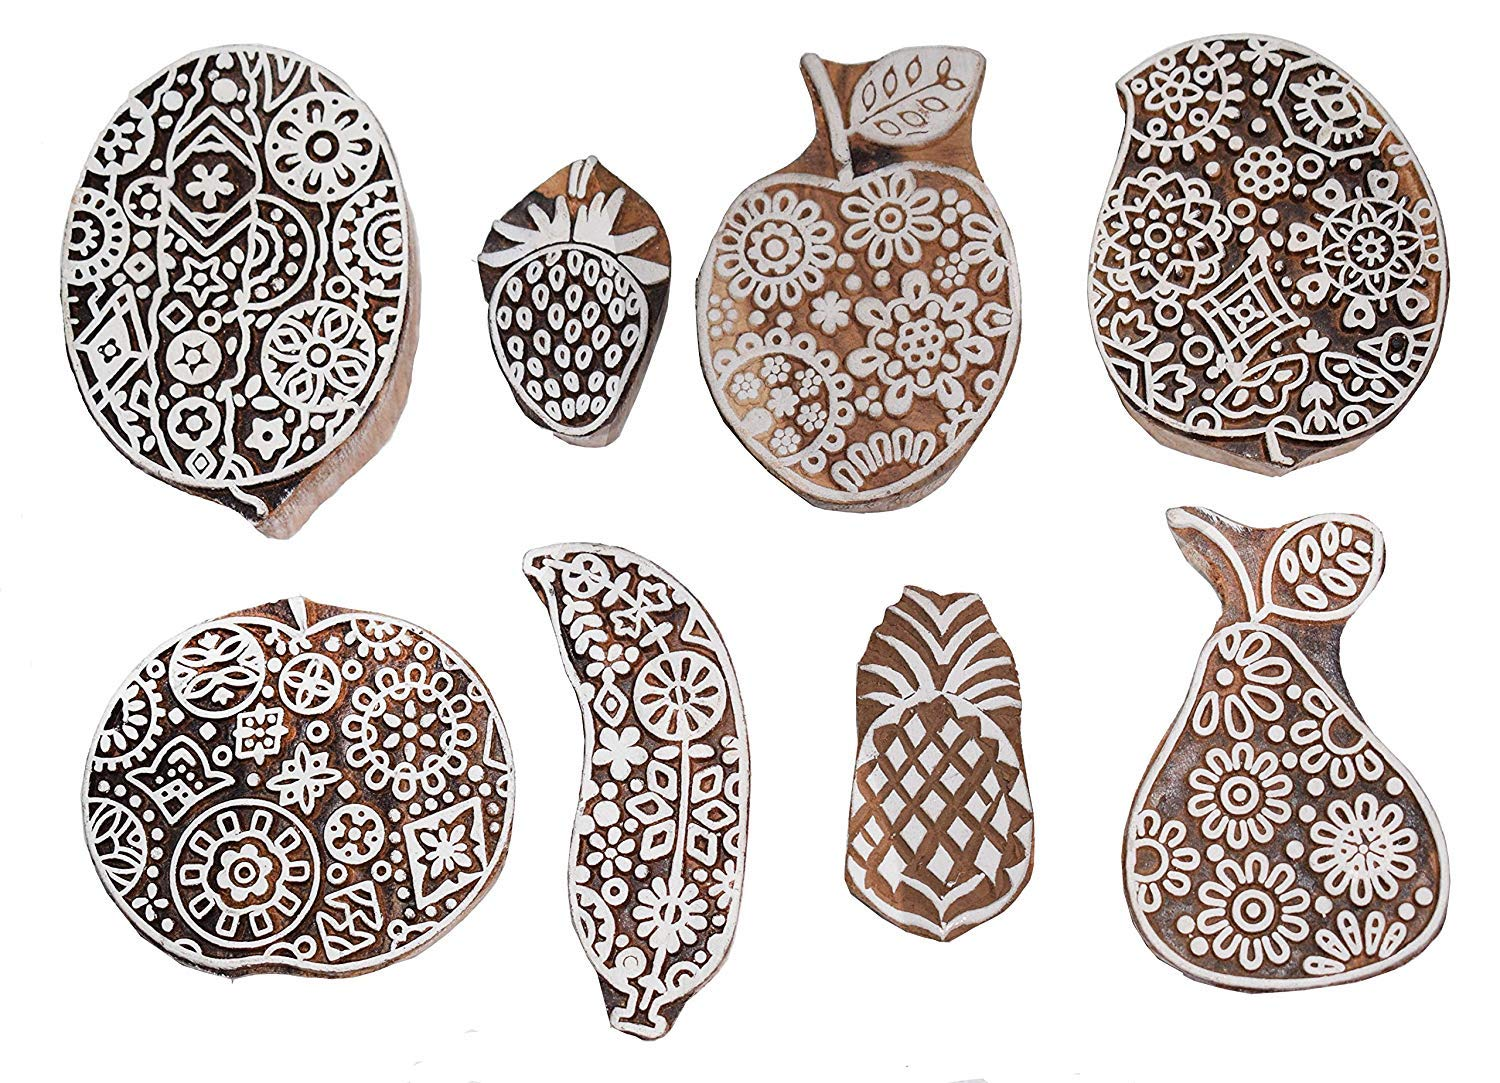 Printing Stamps Fruits Design Wooden Blocks Hand-Carved for Saree Border Making Pottery Crafts Textile Printing